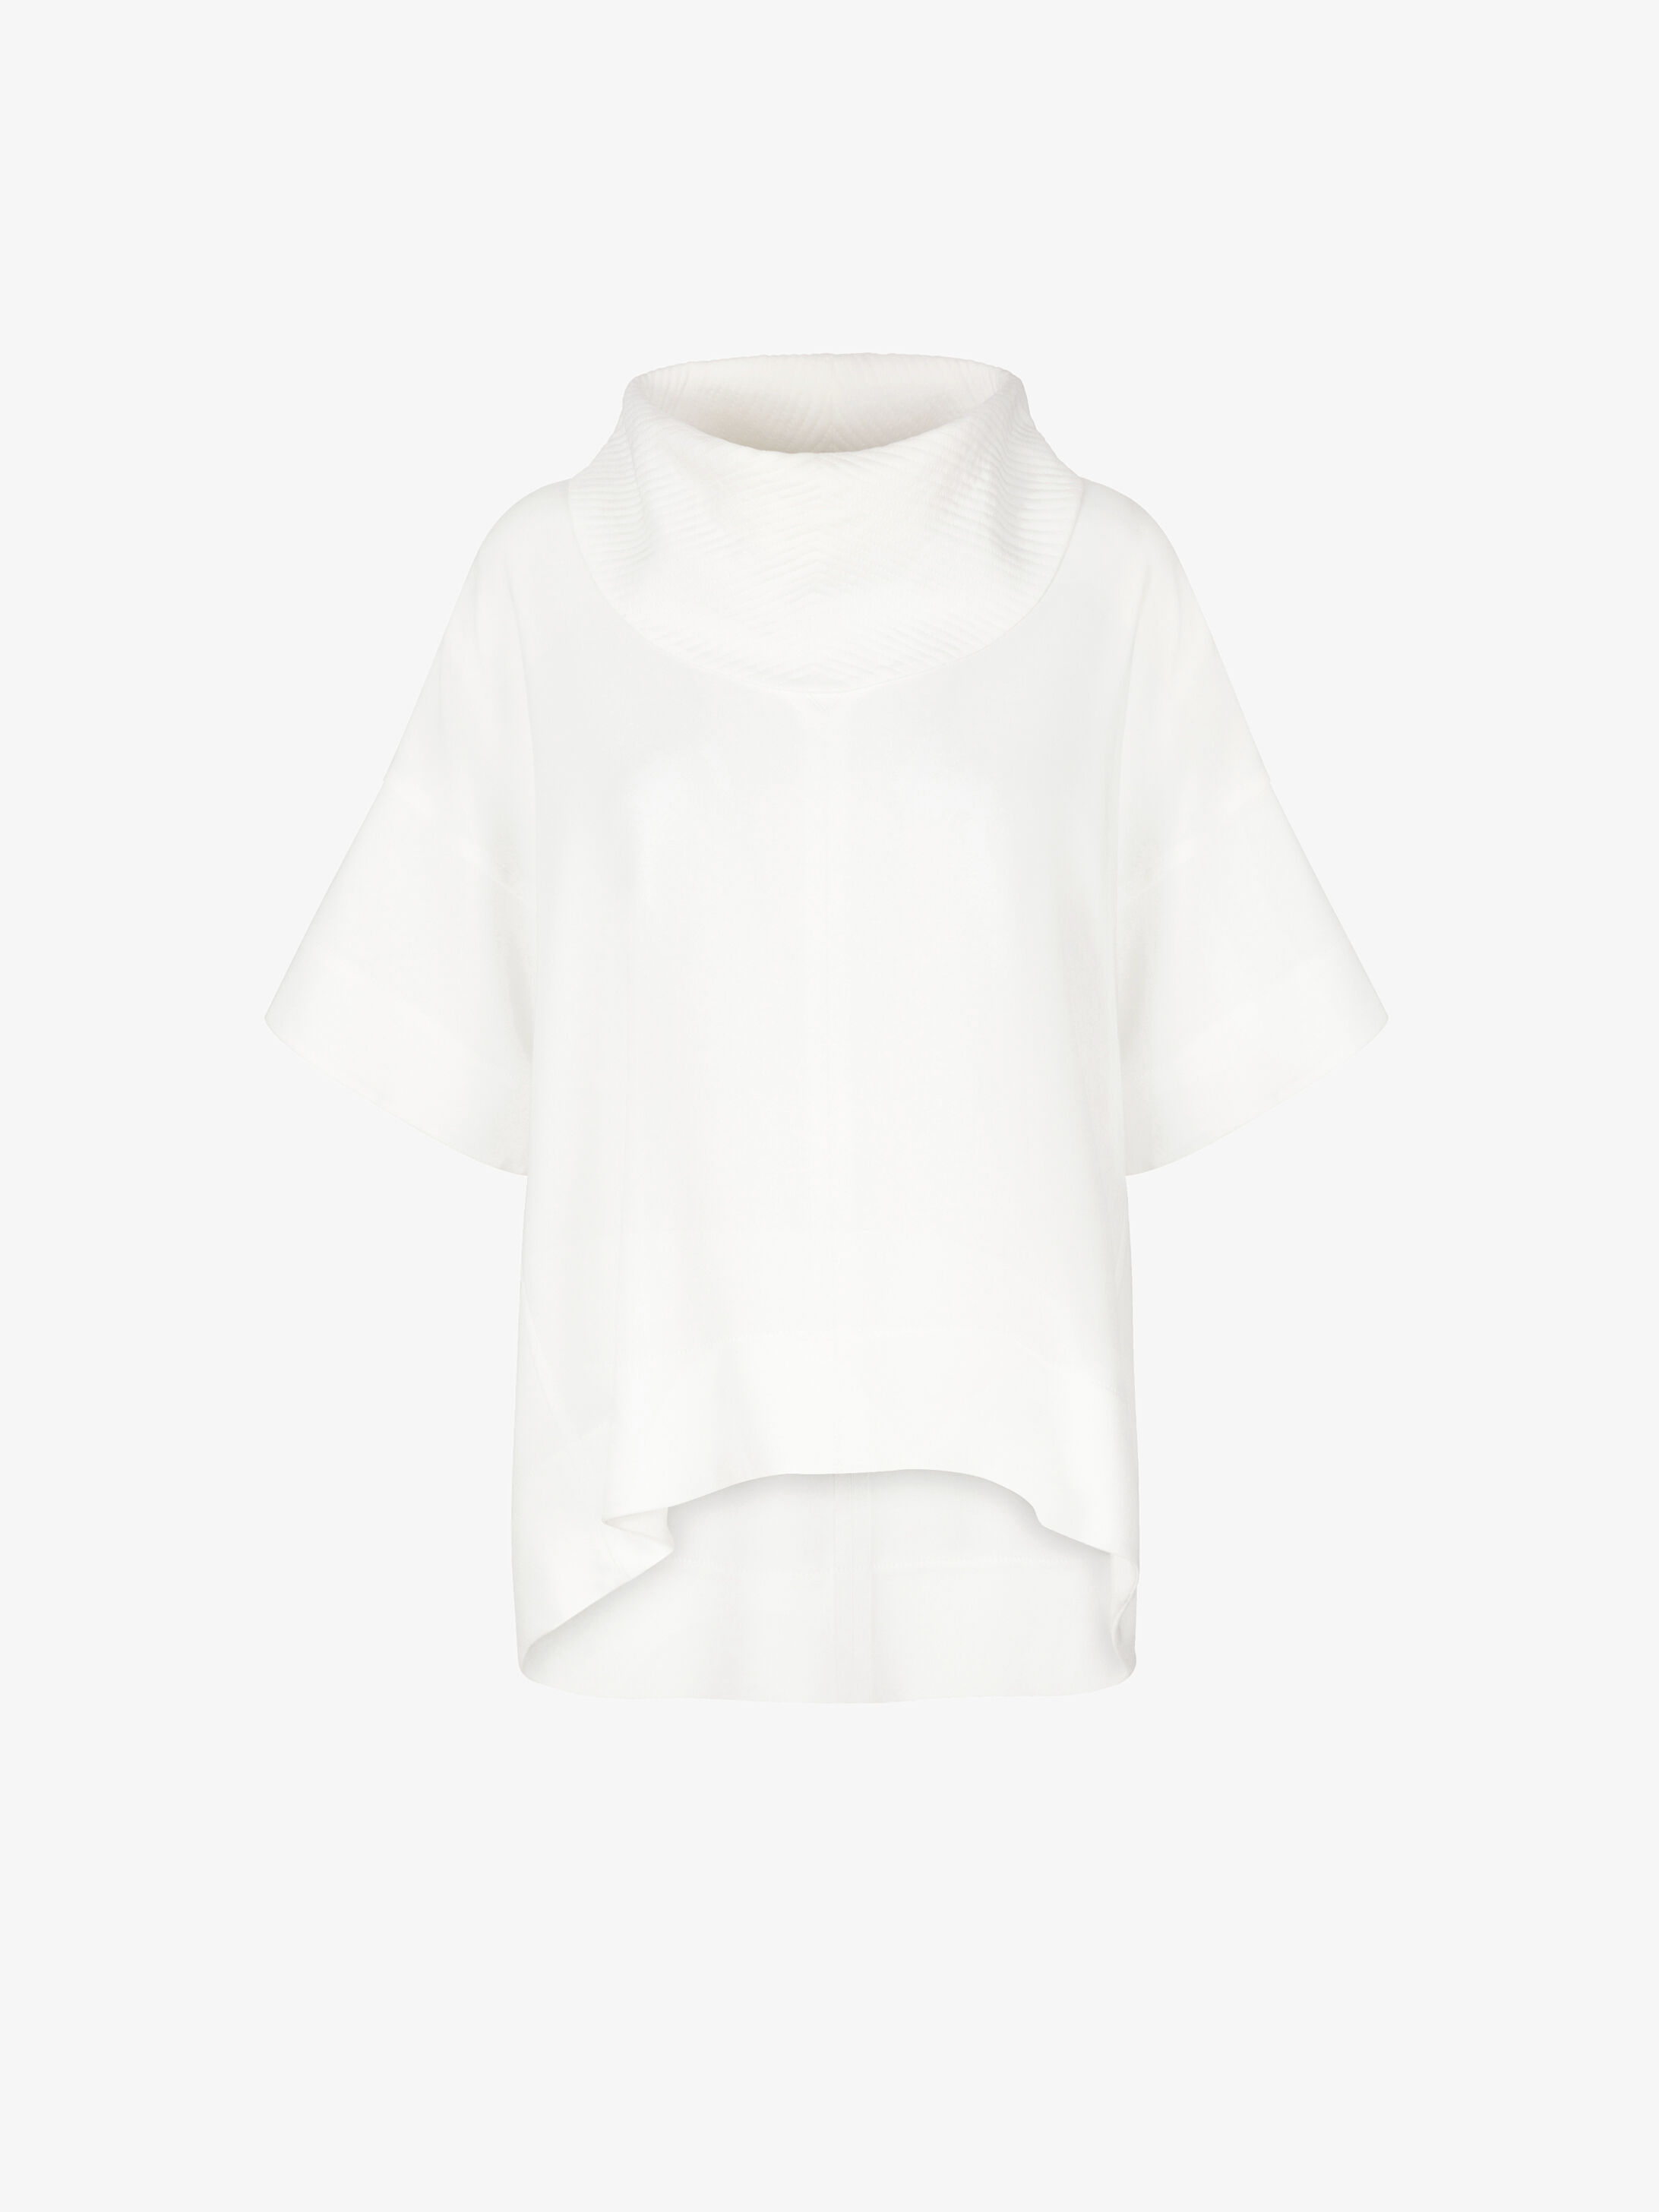 6331fa88c9a073 Women s Tops and Shirts collection by Givenchy.